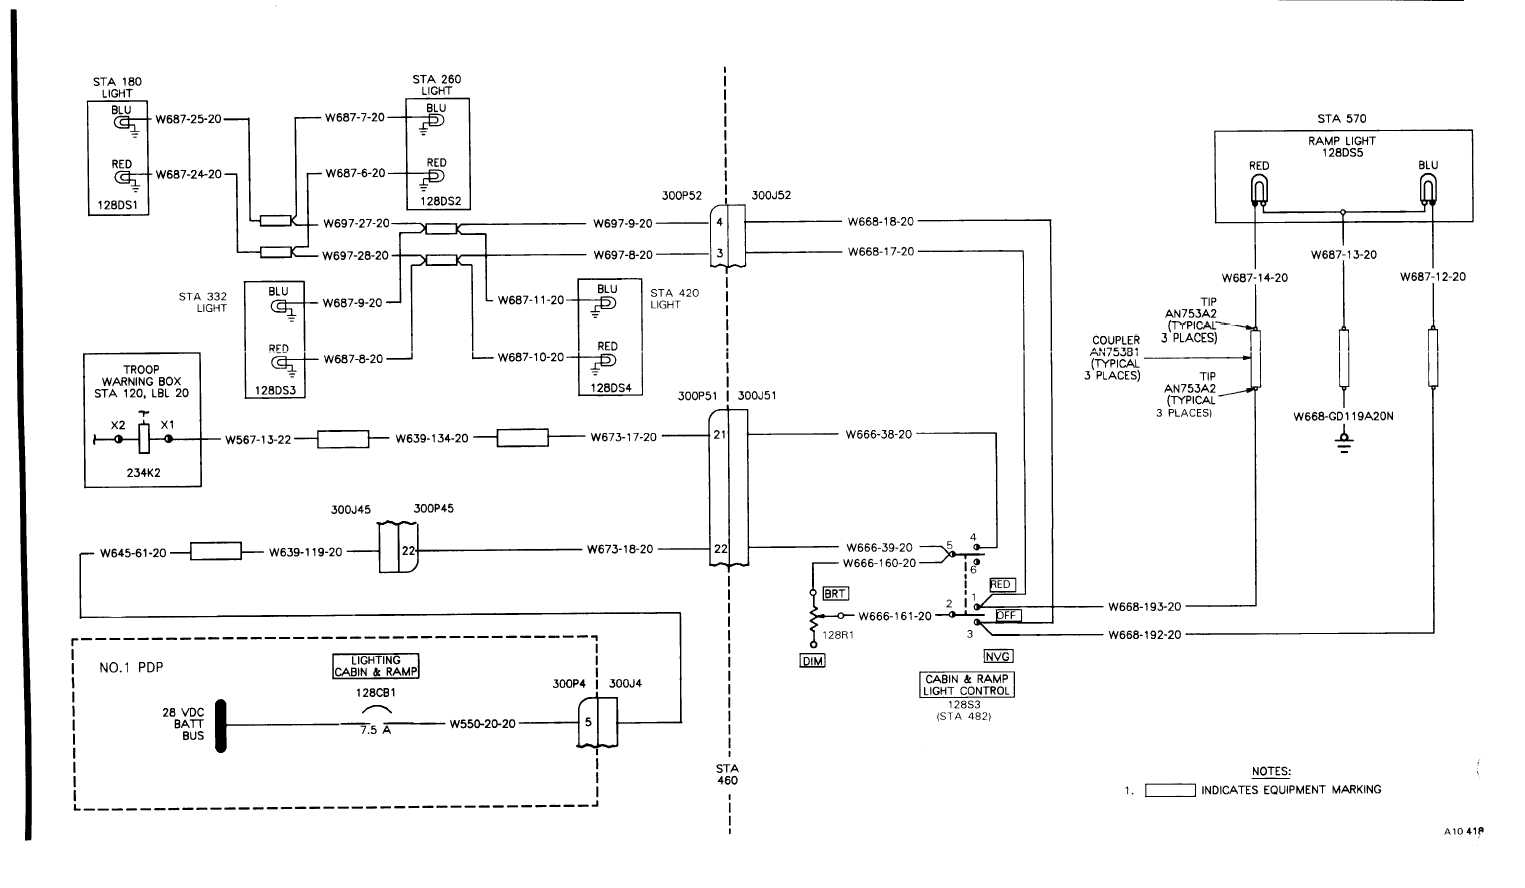 CABIN AND RAMP LIGHTS WIRING DIAGRAM